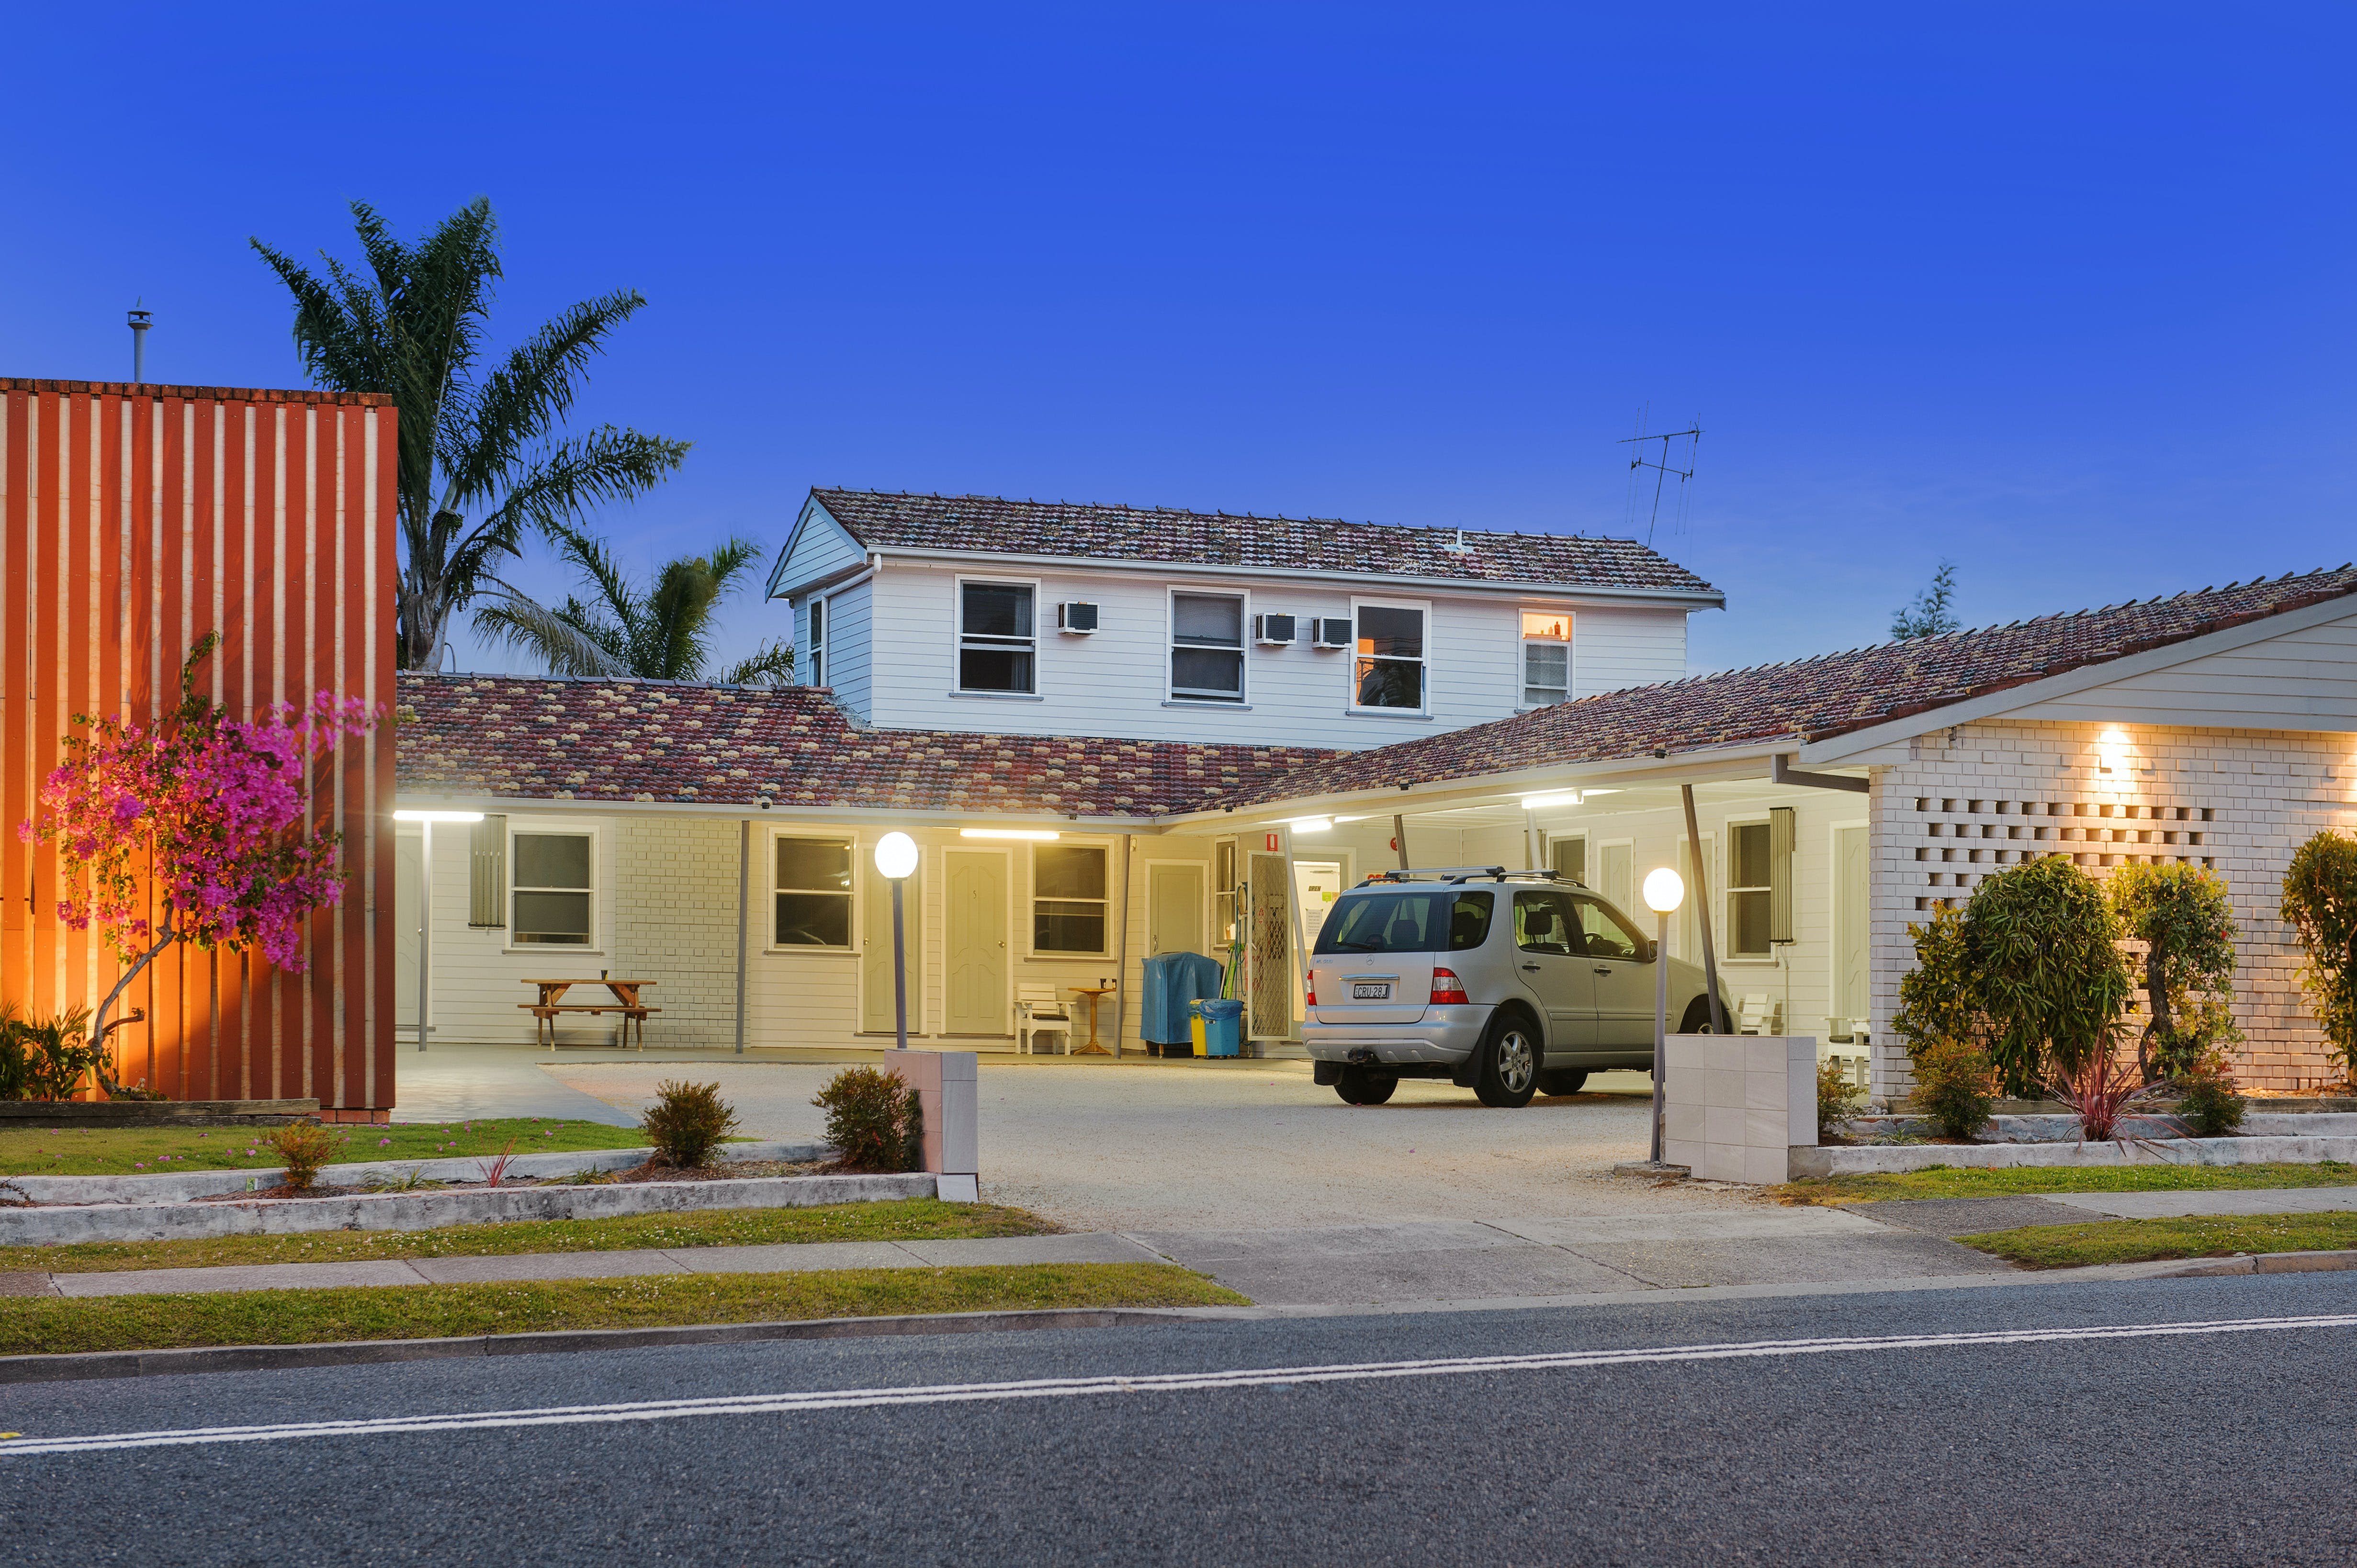 Wauchope Motel - Accommodation in Surfers Paradise